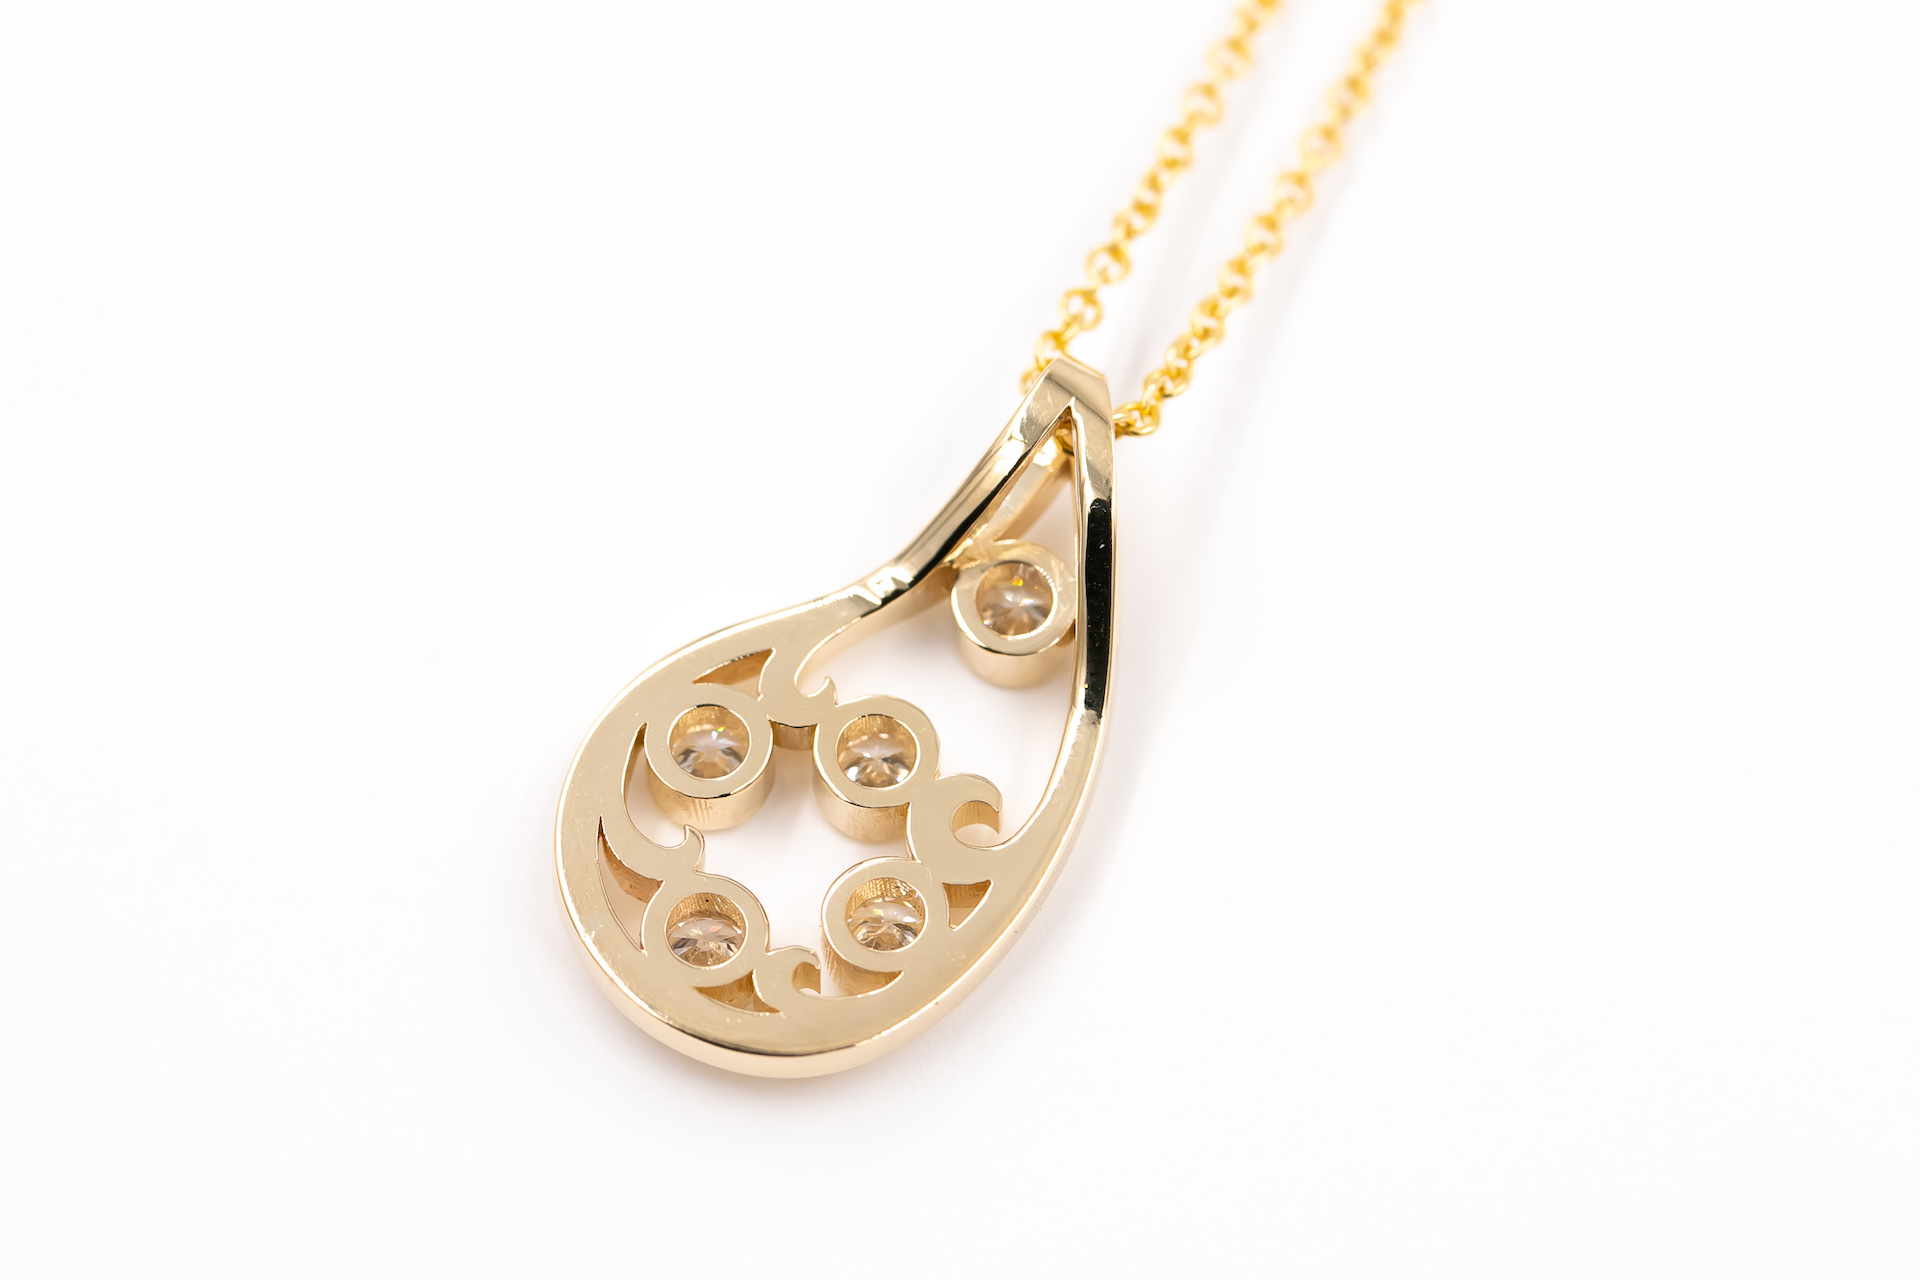 gold-diamond-pendant-necklace-jewelry-3